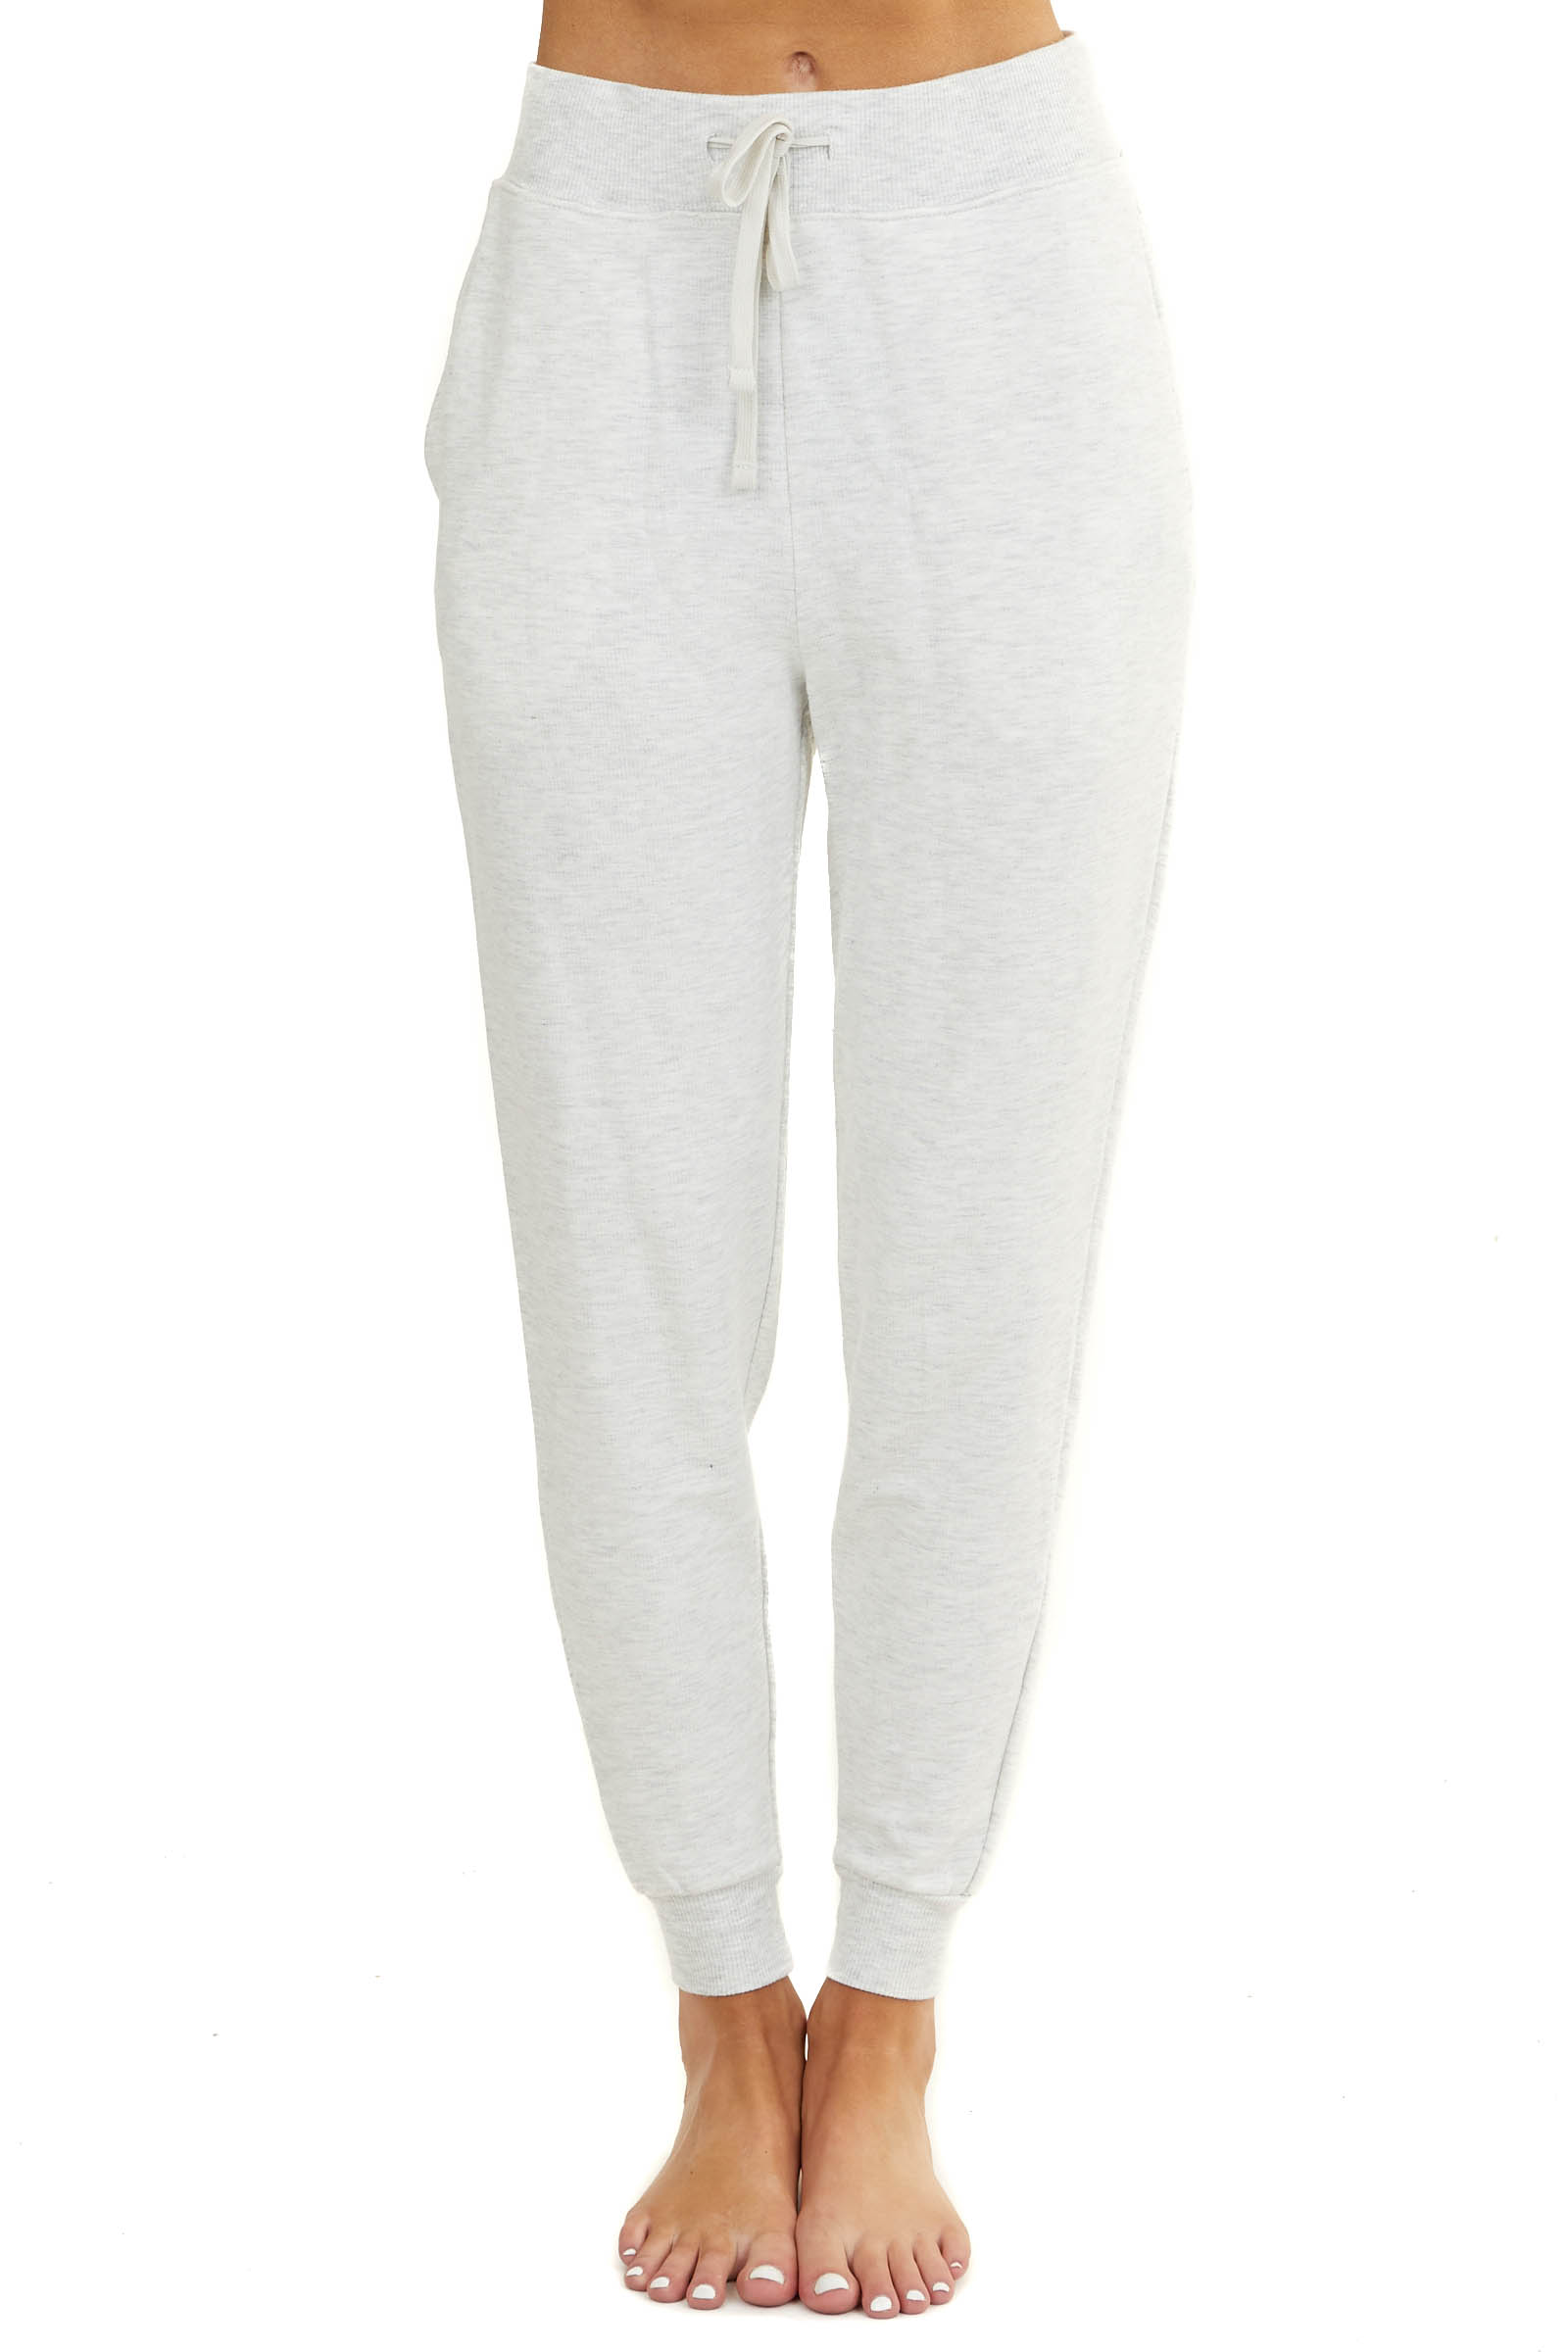 Heathered Pale Grey Joggers with Drawstring and Side Pockets